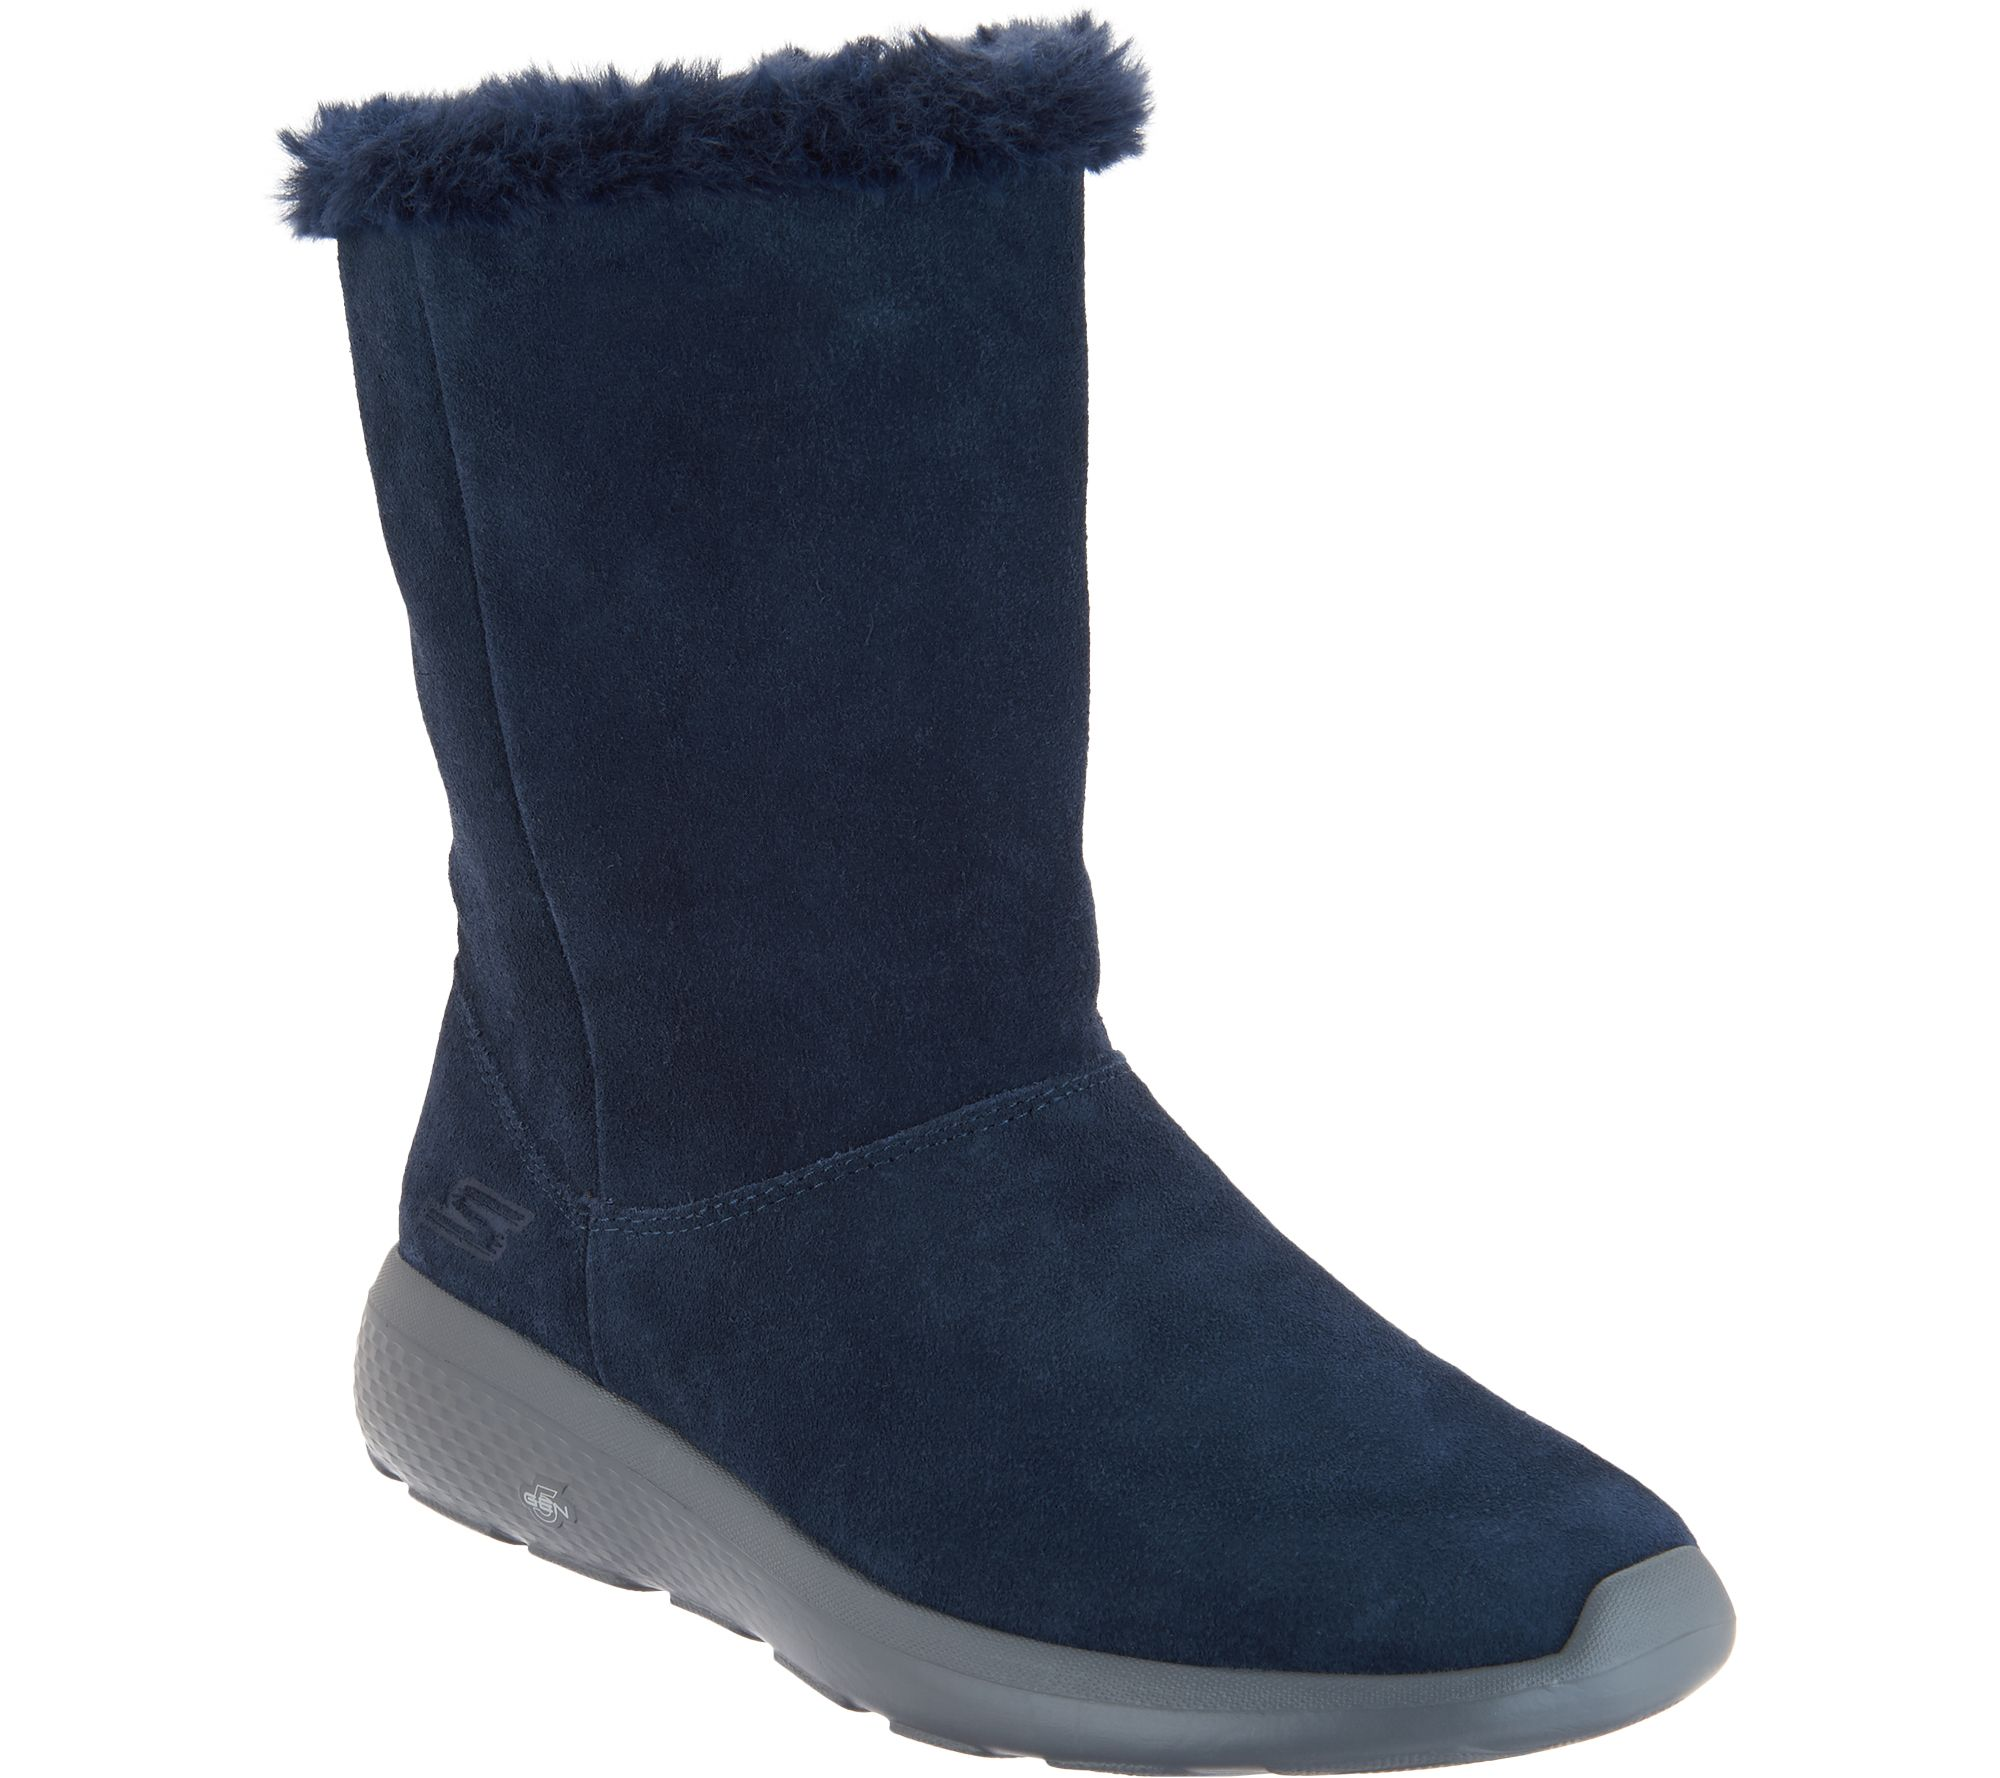 super quality best sneakers 100% quality Skechers GOwalk Suede and Faux Fur Boots - Stunning — QVC.com